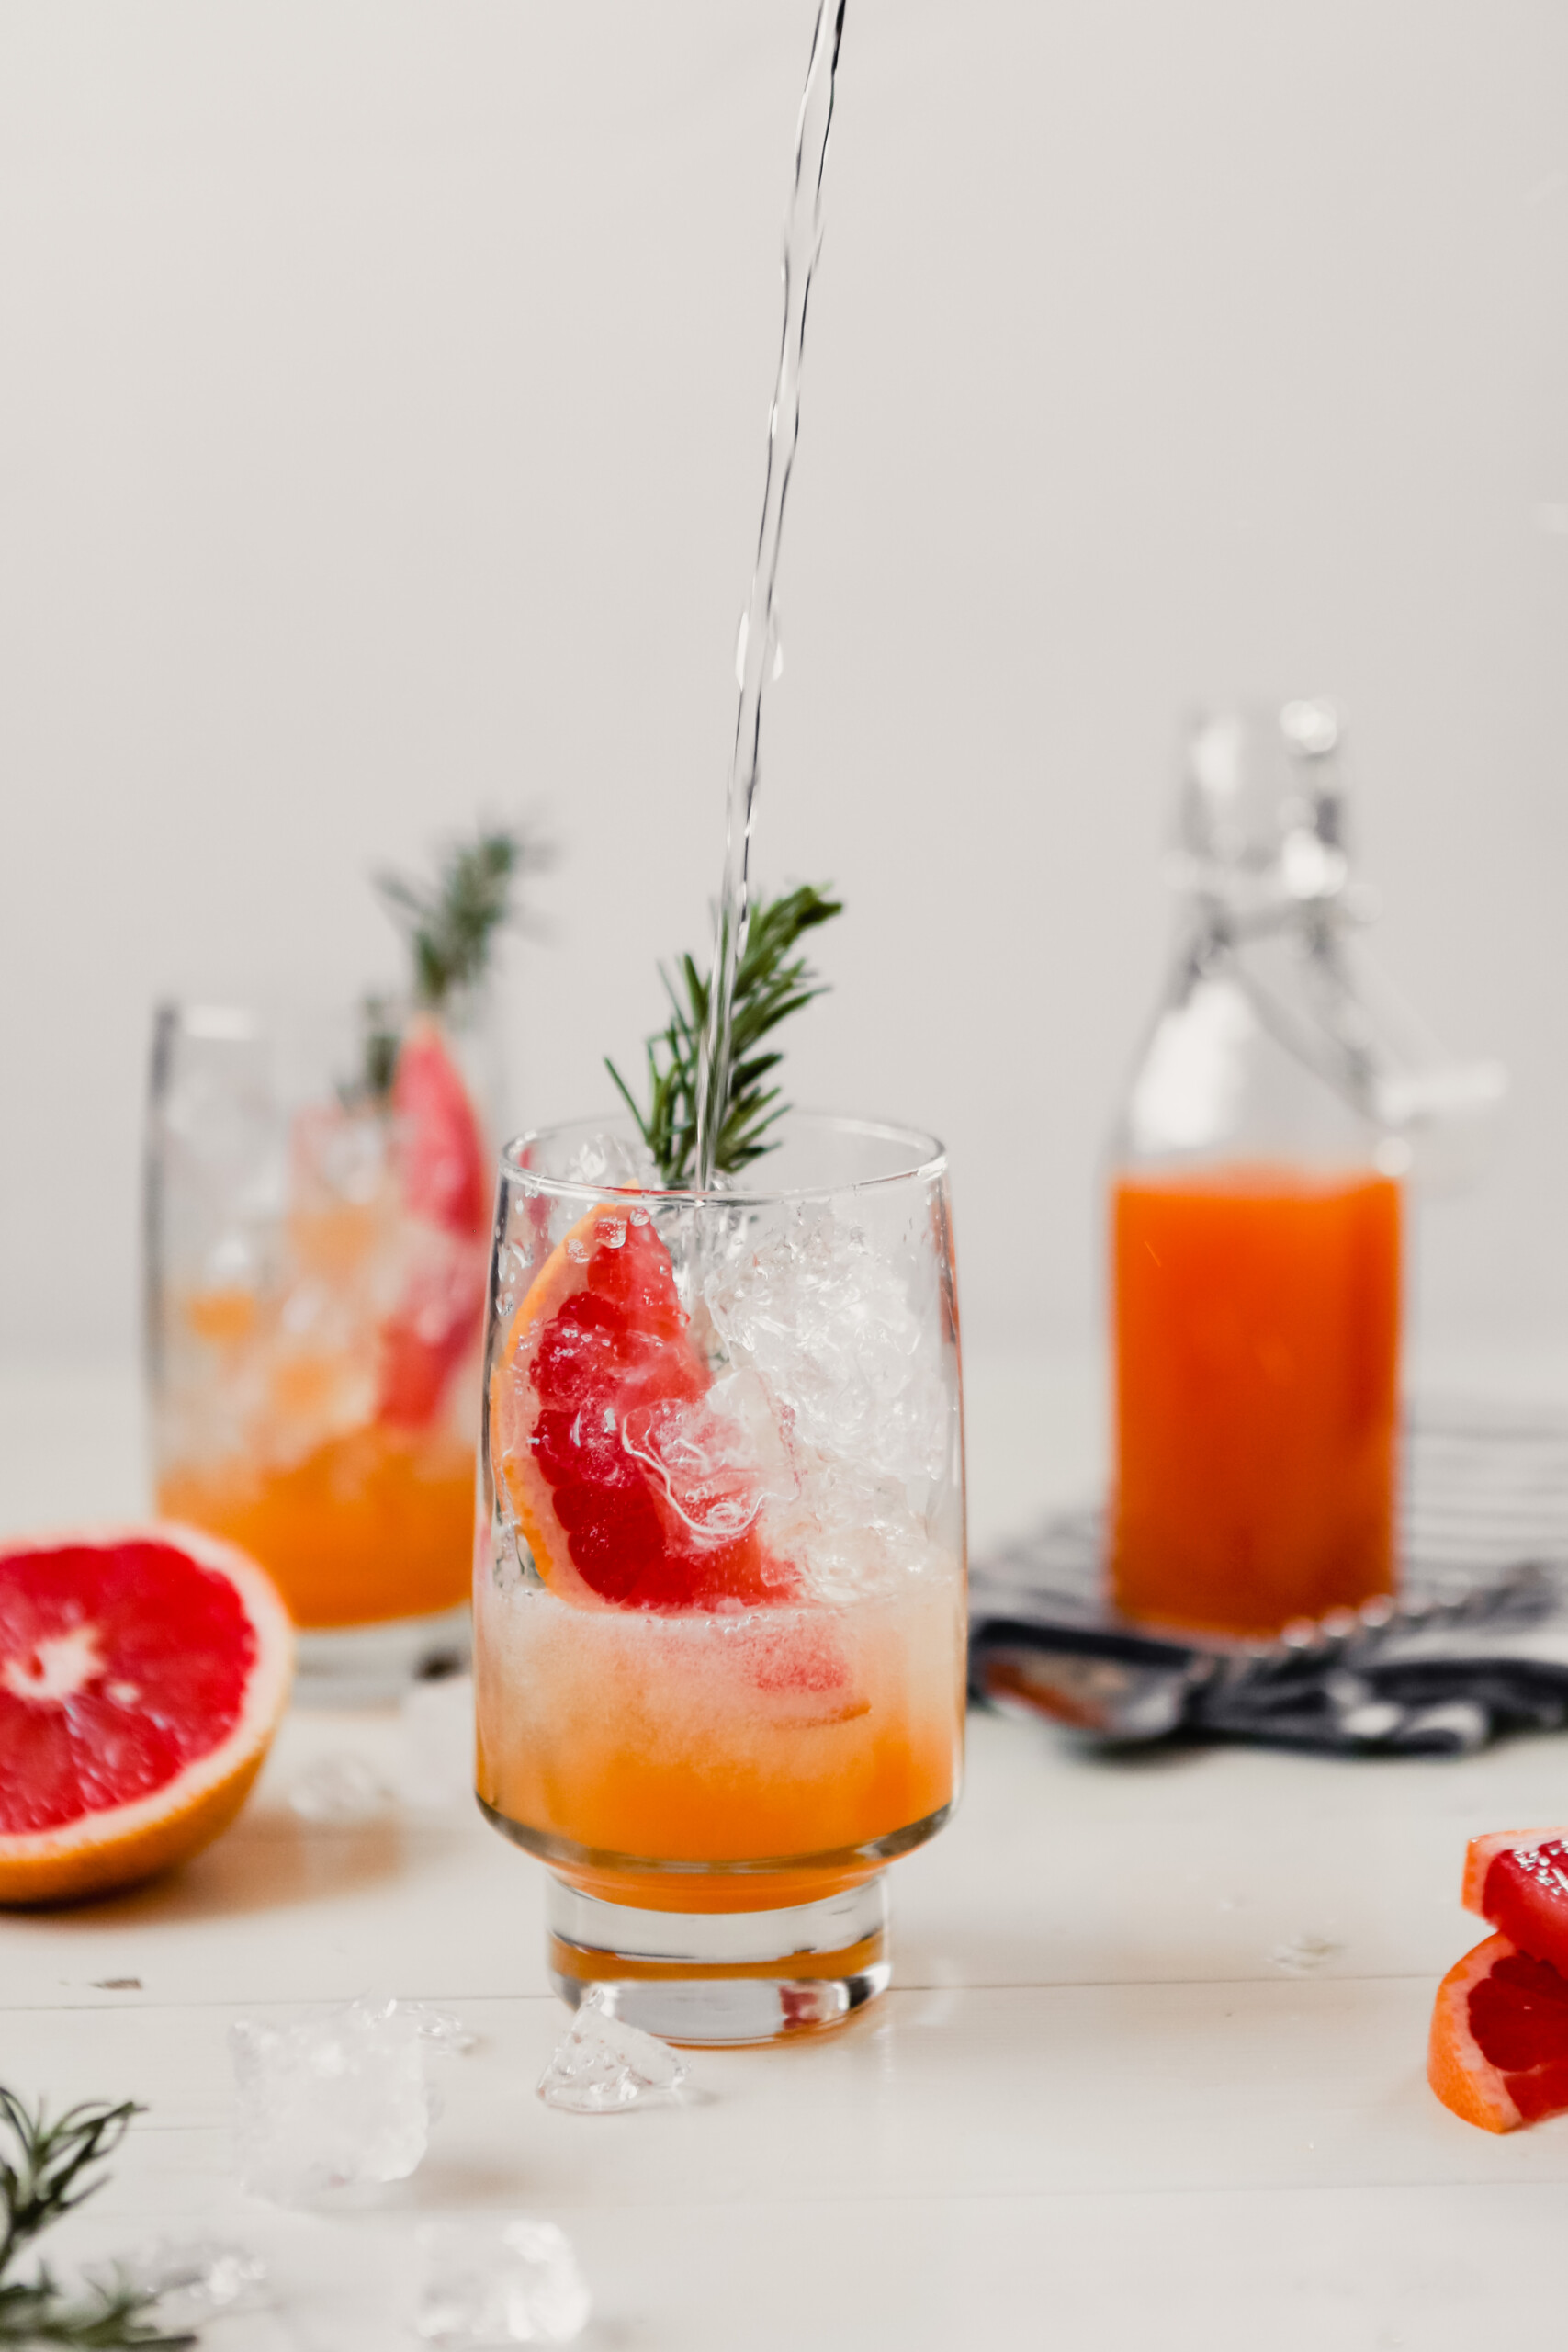 Photograph of club soda being pouring into .a glass with a grapefruit slice and sprig of rosemary to make a grapefruit soda.